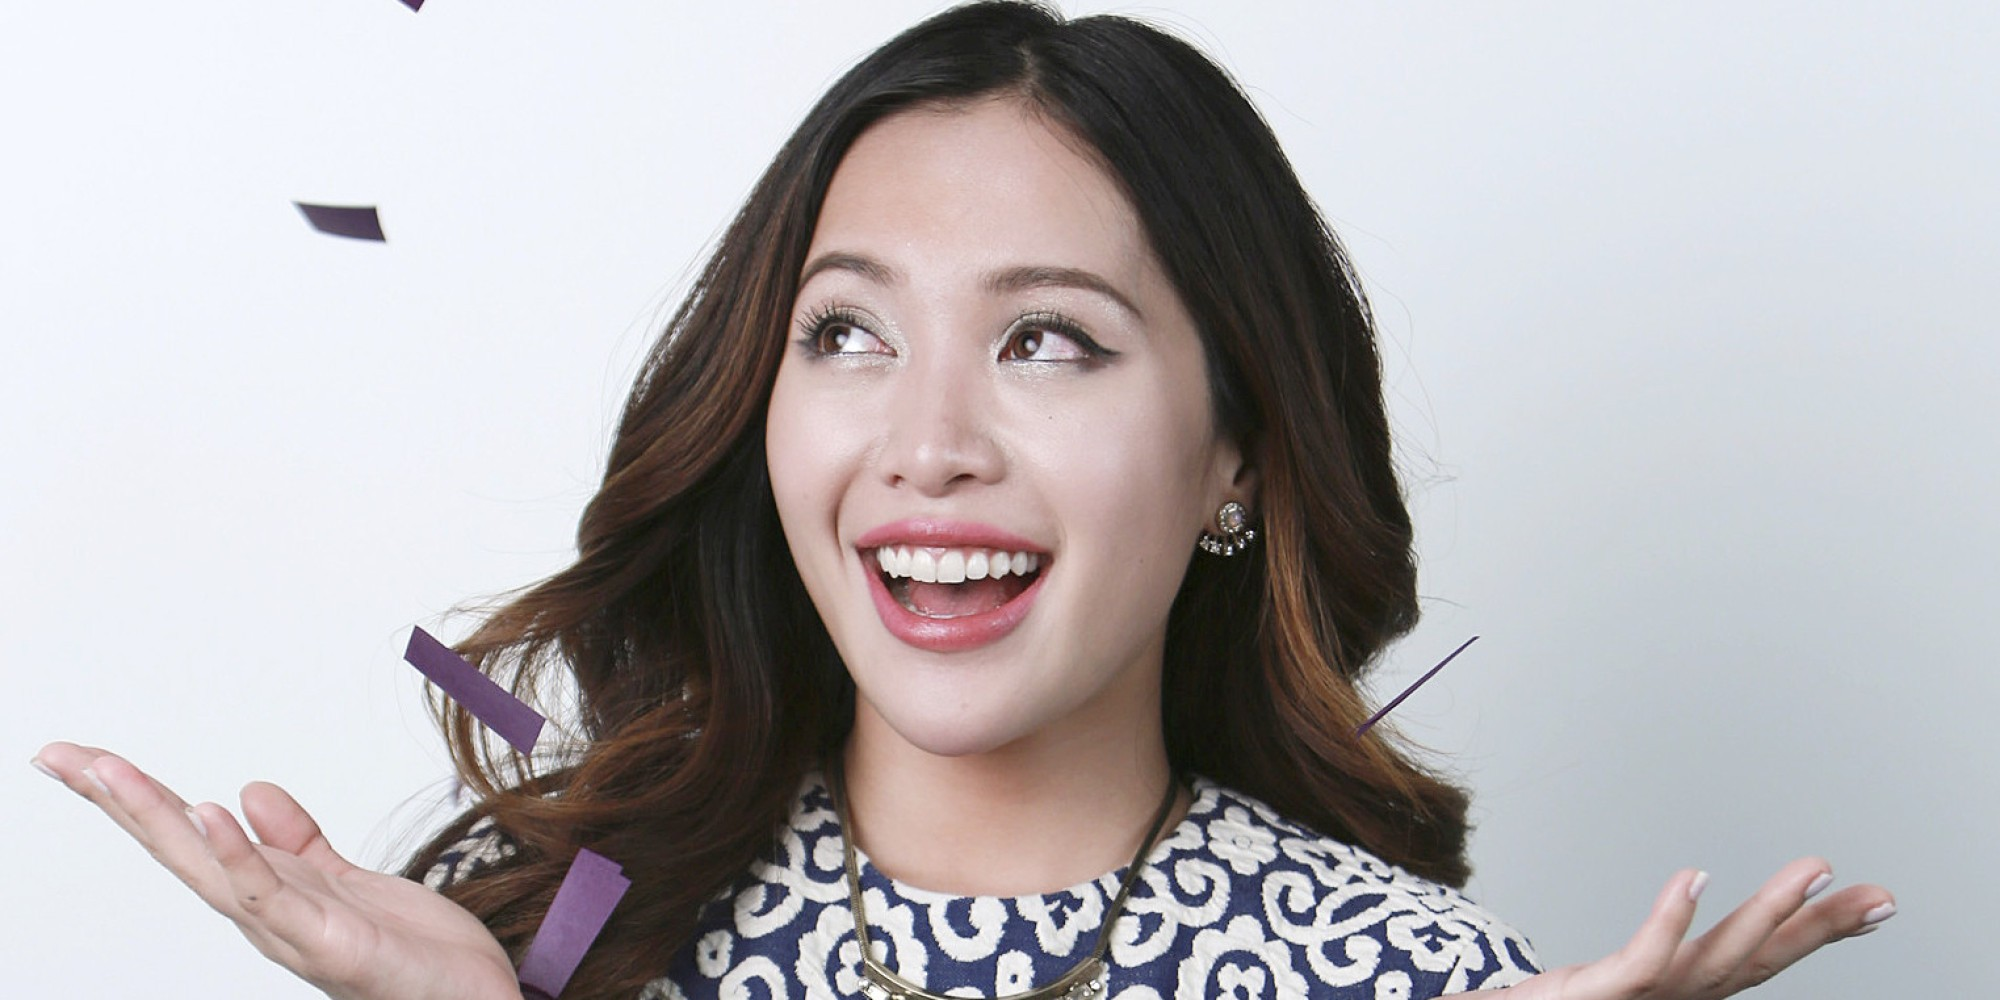 YouTube personality best known for her make-up demonstrations, Michelle Phan poses for a portrait on Tuesday, March 31, 2015 in New York. (Photo by Amy Sussman/Invision/AP)